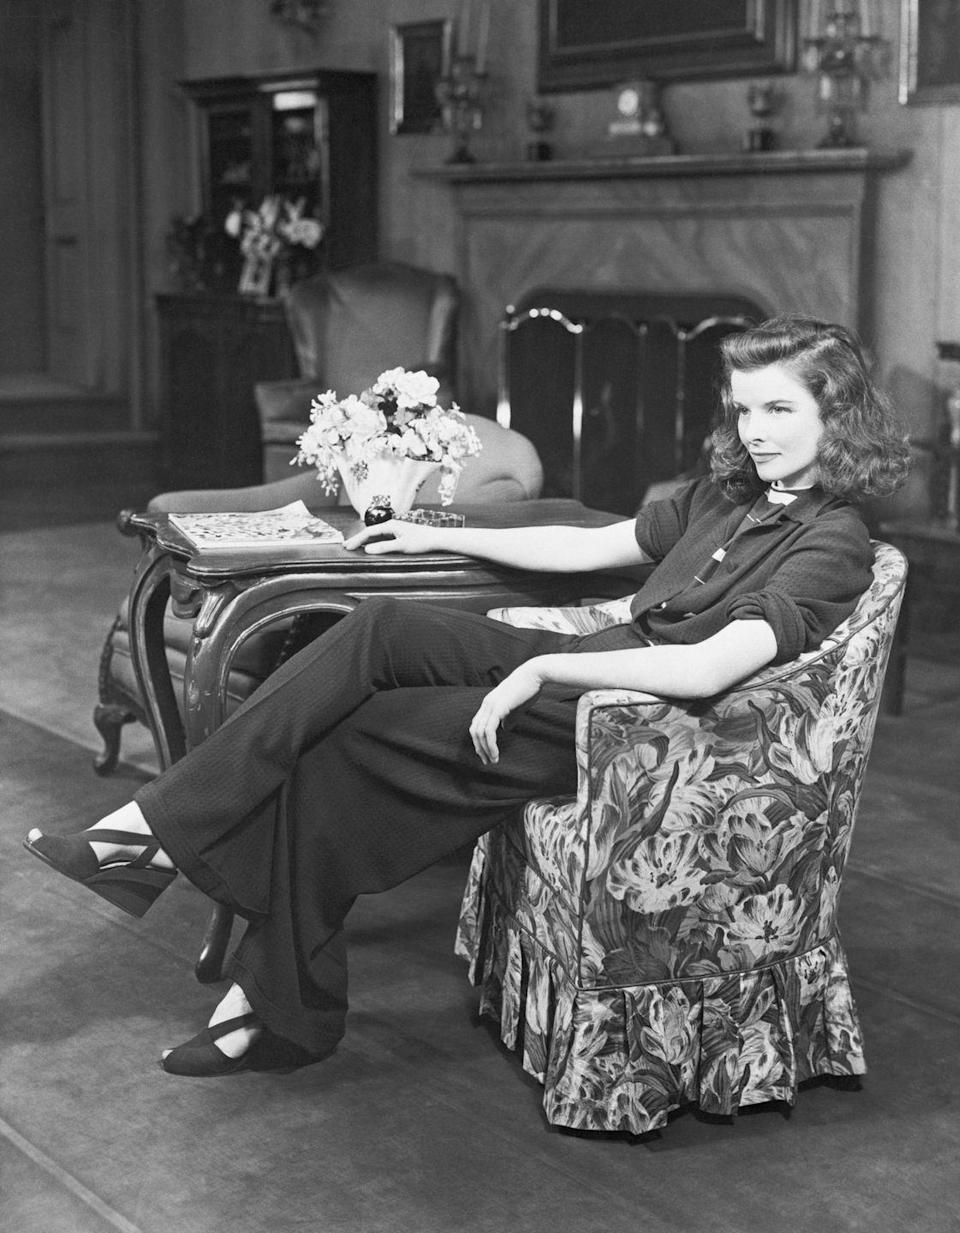 "<p>Katharine Hepburn famously rejected her studio's guidelines on dress code and reportedly walked around set in her underwear, refusing to get dressed, after someone in the costume department at <a href=""https://www.biography.com/actor/katharine-hepburn"" rel=""nofollow noopener"" target=""_blank"" data-ylk=""slk:RKO Radio Pictures took her pants away"" class=""link rapid-noclick-resp"">RKO Radio Pictures took her pants away</a>. </p>"